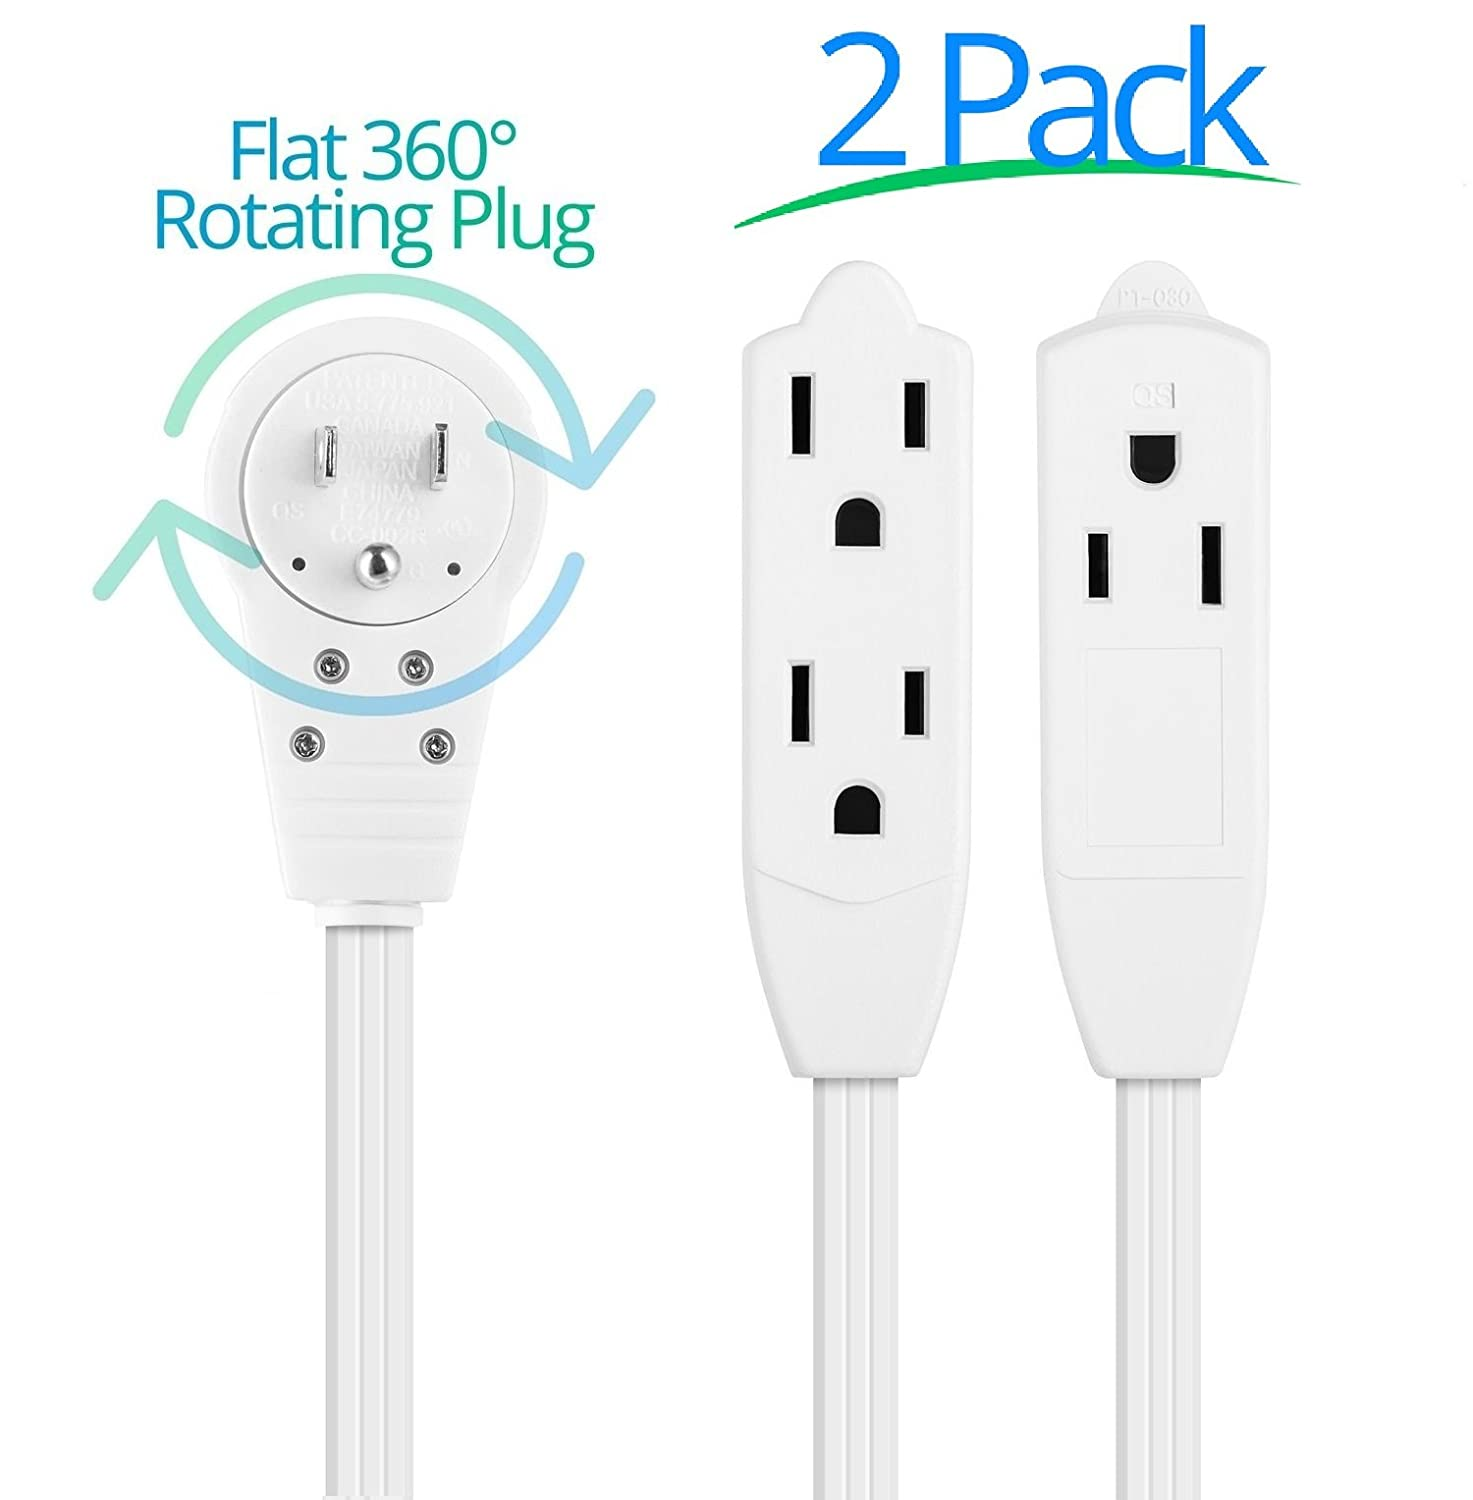 Maximm Cable 6 Ft 360° Rotating Flat Plug Extension Cord/Wire, 16 AWG Multi 3 Outlet Extension Wire, 3 Prong Grounded Wire - White - UL Listed, 2 Pack